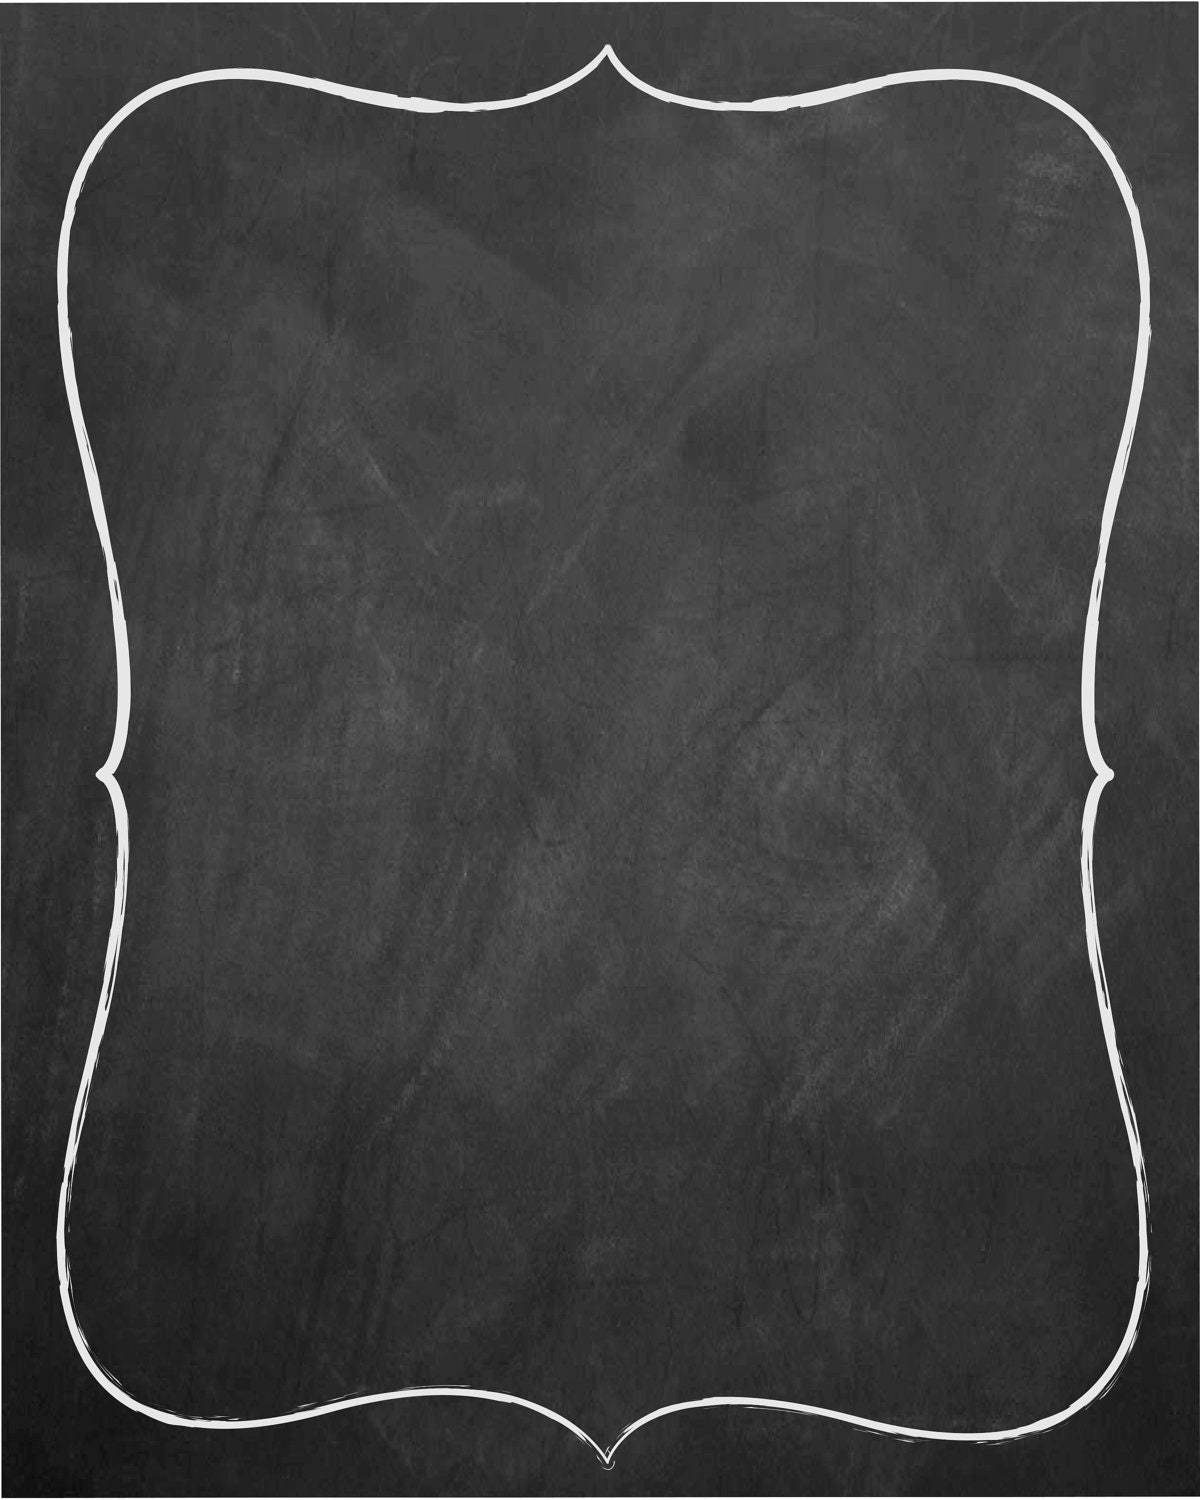 Chalkboard template playbestonlinegames for Printable chalkboard template